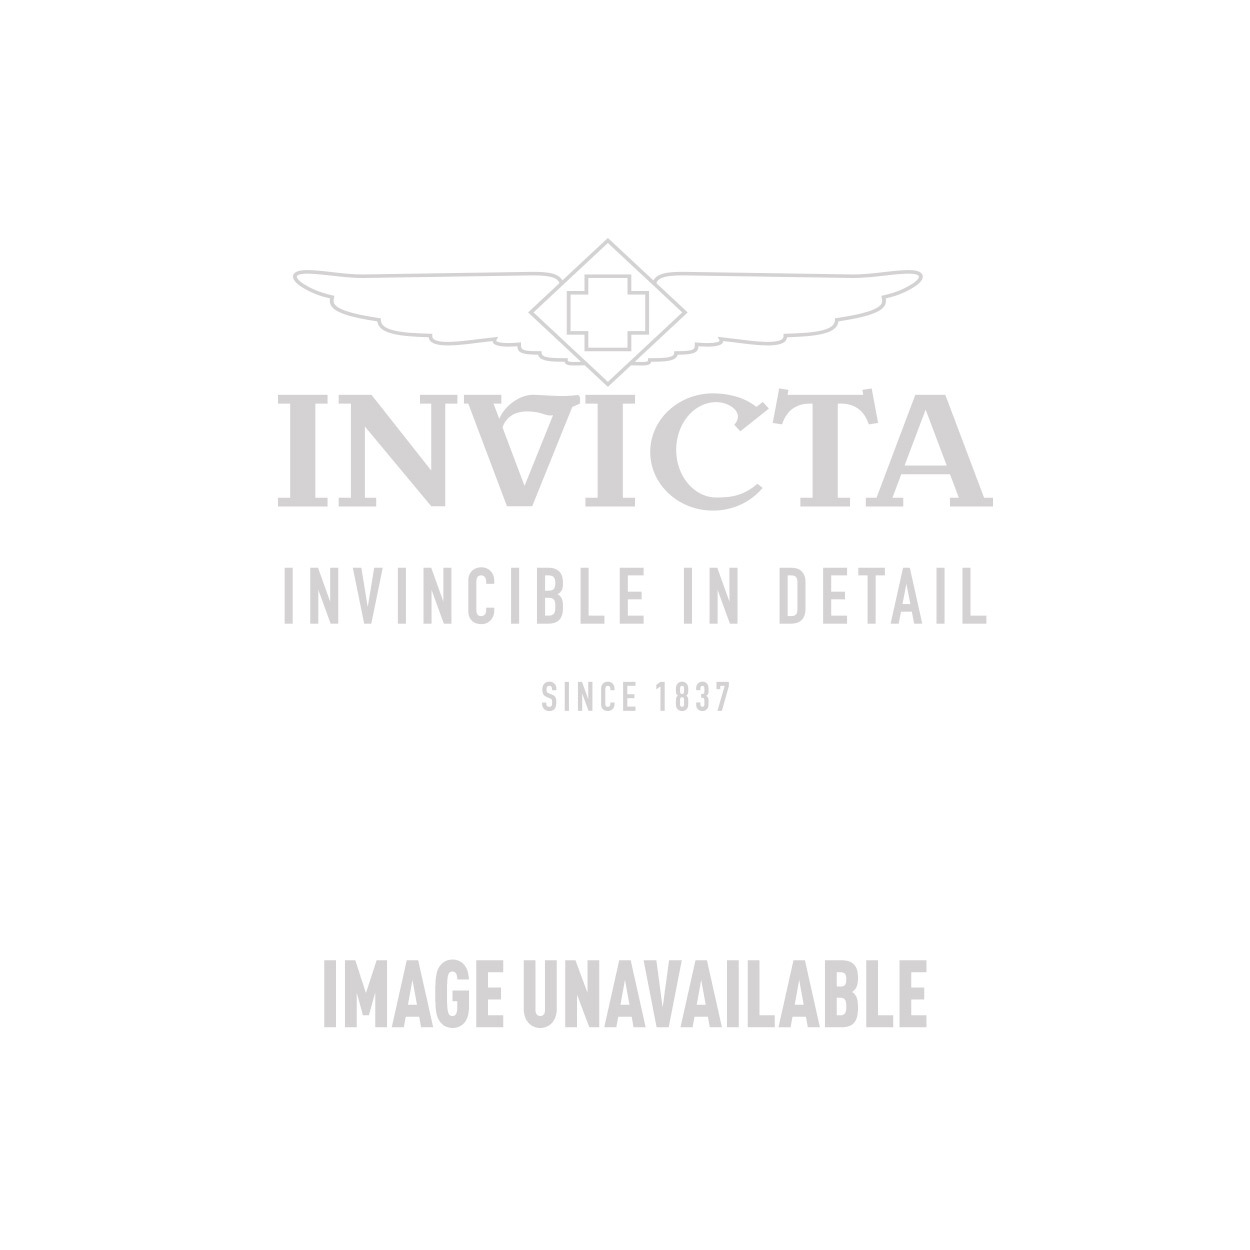 Invicta Pro Diver Swiss Movement Quartz Watch - Stainless Steel case Stainless Steel band - Model 12568